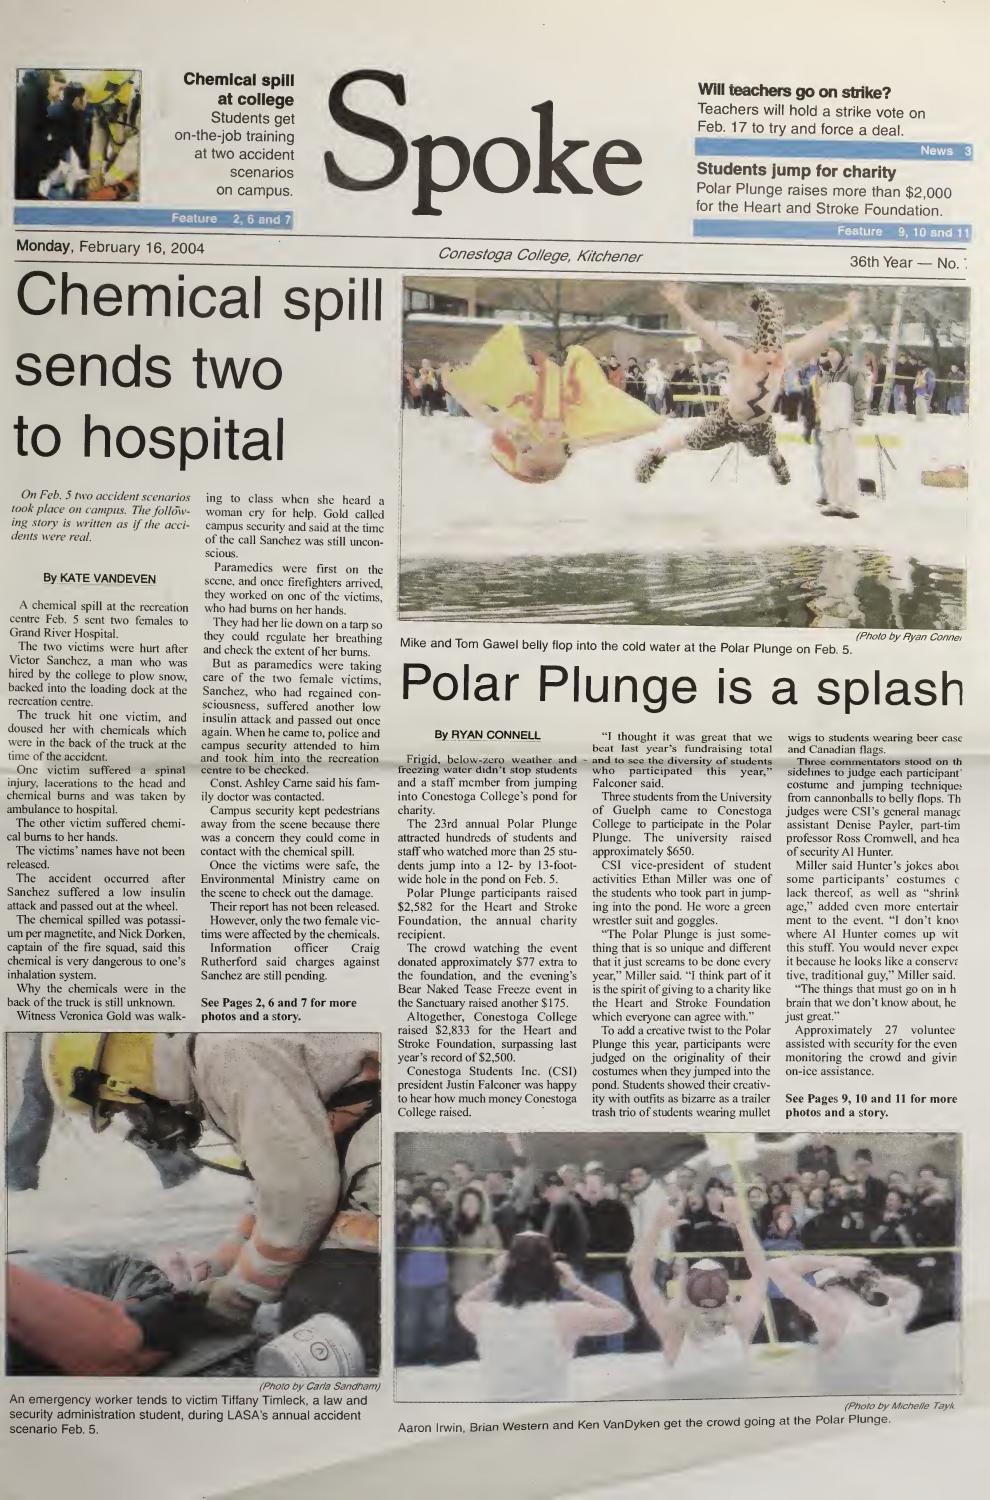 Digital Edition - February 16, 2004 by SPOKENewspaper - issuu